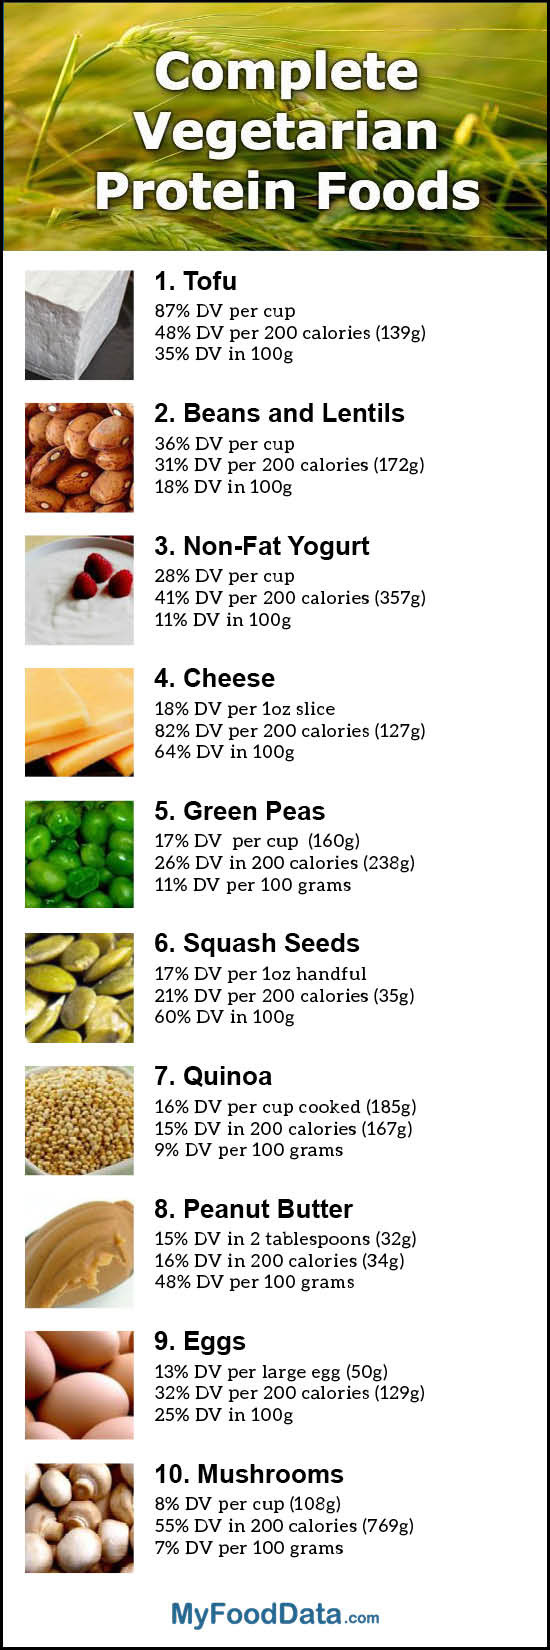 Vegetarian Protein Rich Foods  Top 10 plete Ve arian Protein Foods with All the